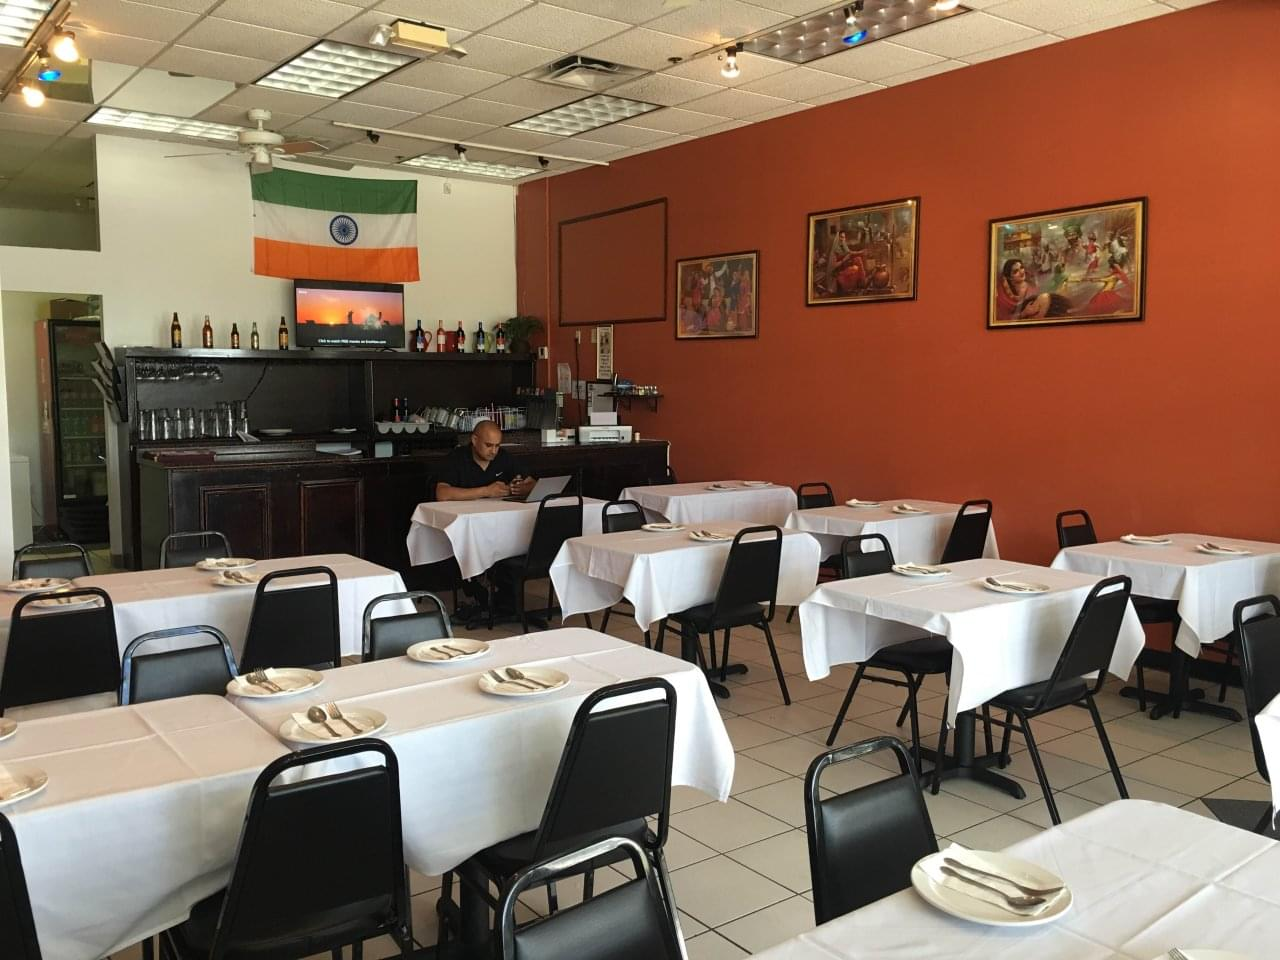 Apna Taste Of Punjab Indian Restaurant Kissimmee Fl Seating